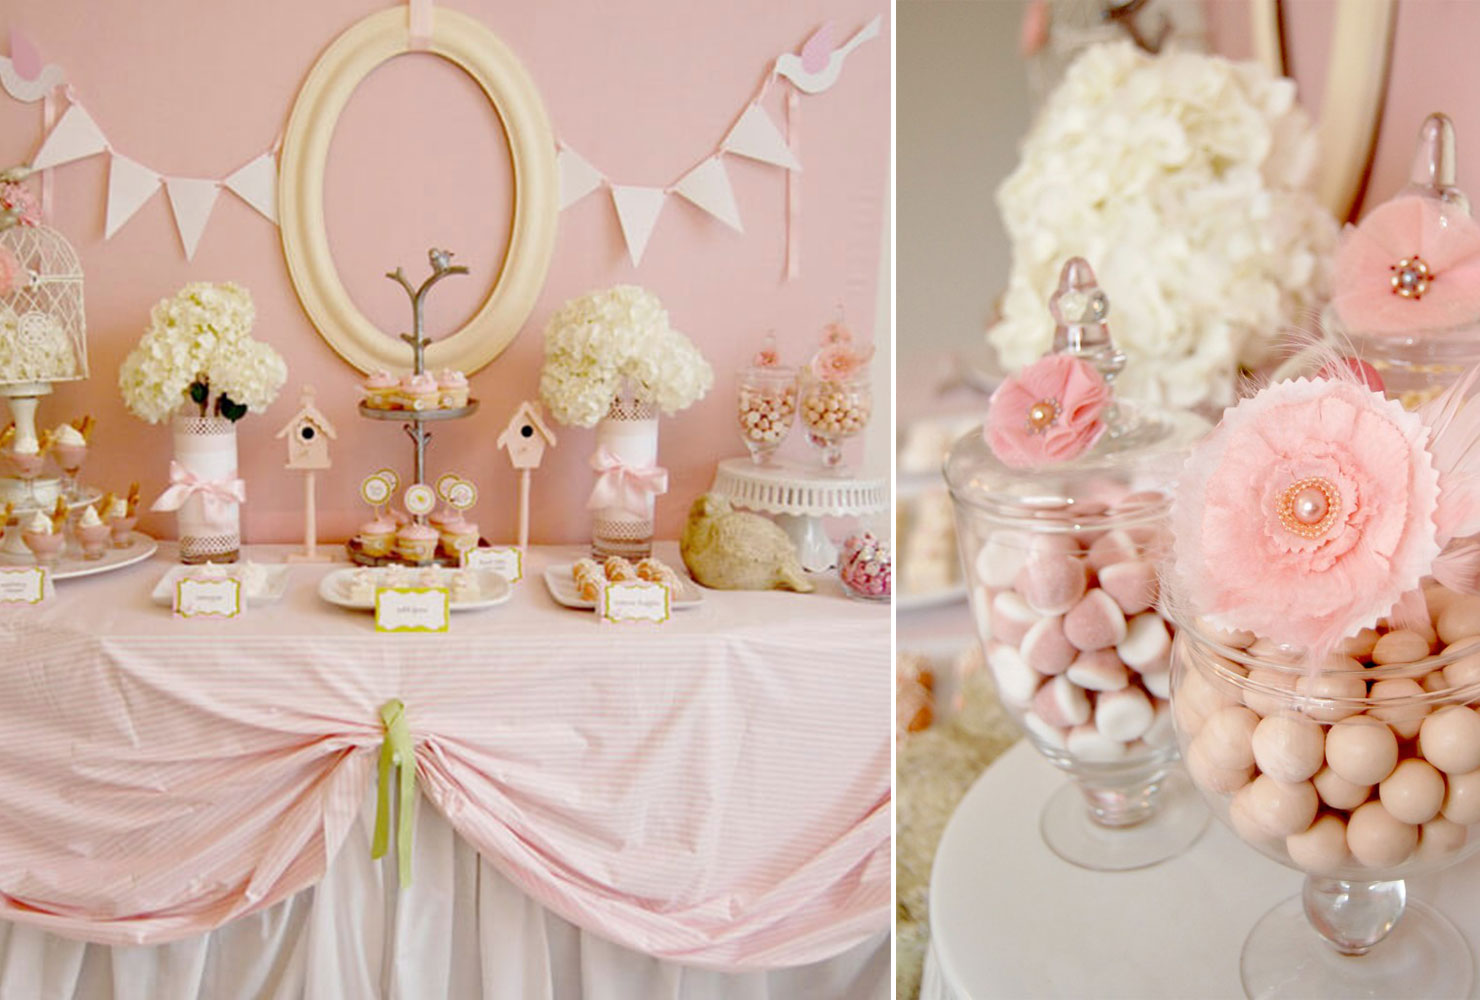 Decoration Ideas Baby Shower Girl 98 Sweet Baby Shower Themes For Girls For 2019 Shutterfly